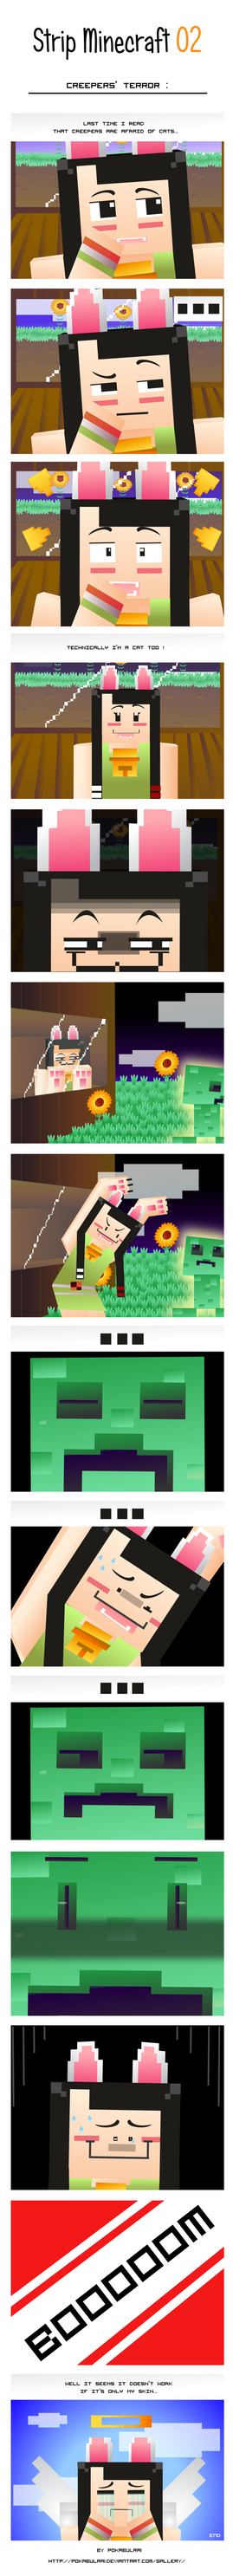 minecraft strip 02 a terror for creepers